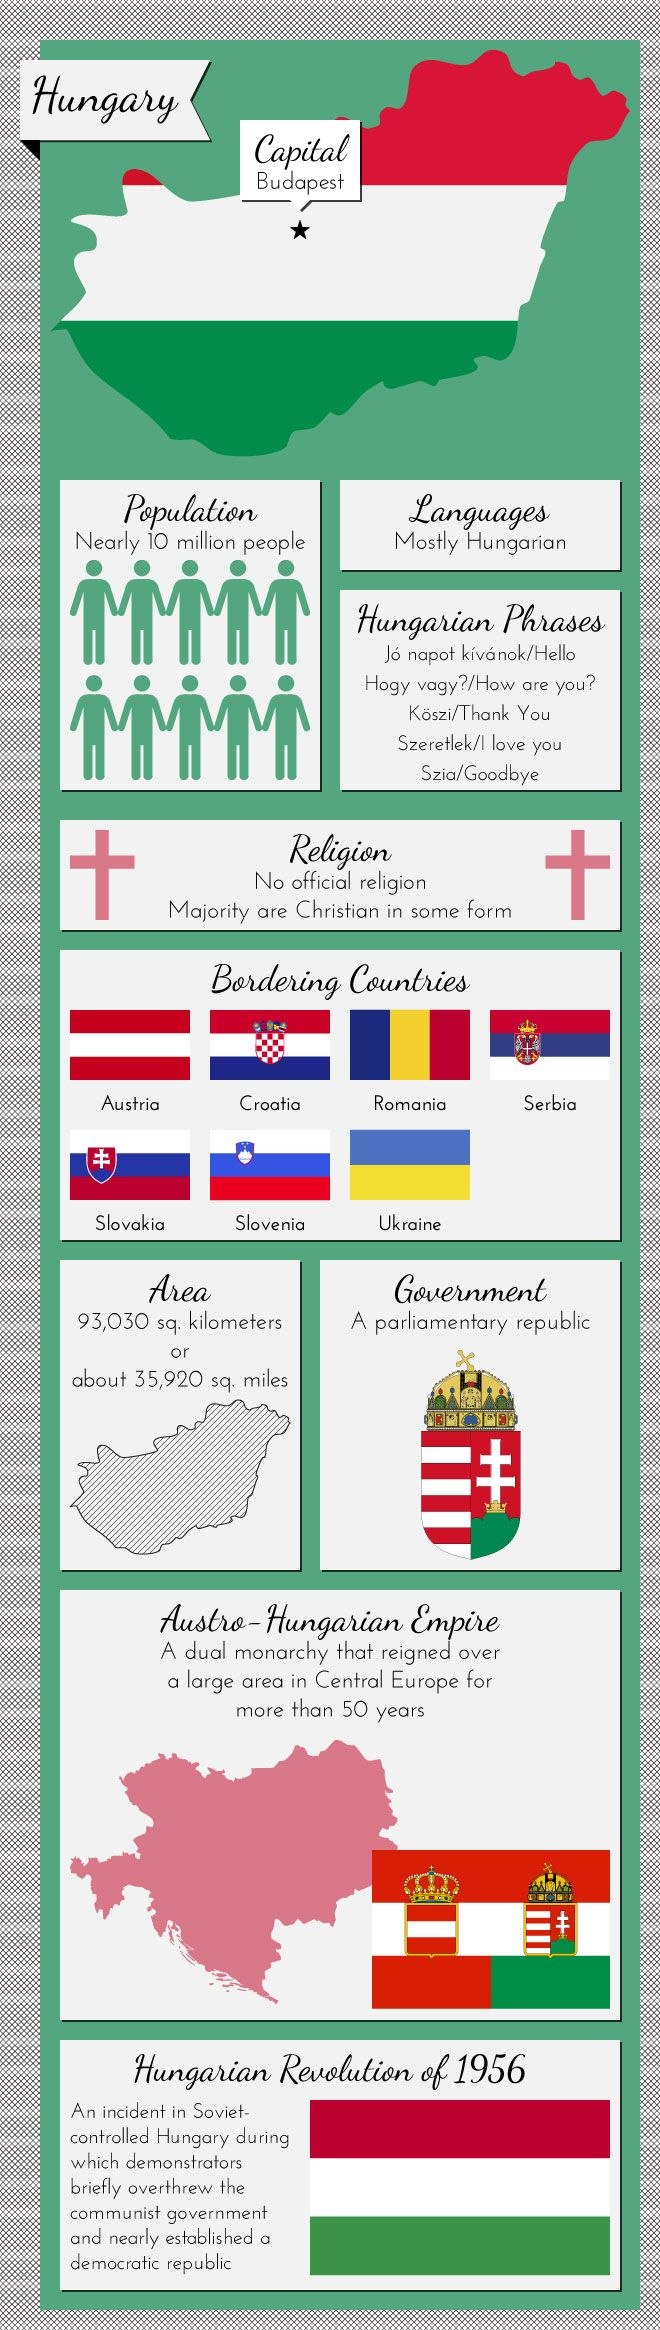 Infographic of Hungary Fast Facts http://www.mapsofworld.com/pages/fast-facts/infographic-of-hungary-fast-facts/